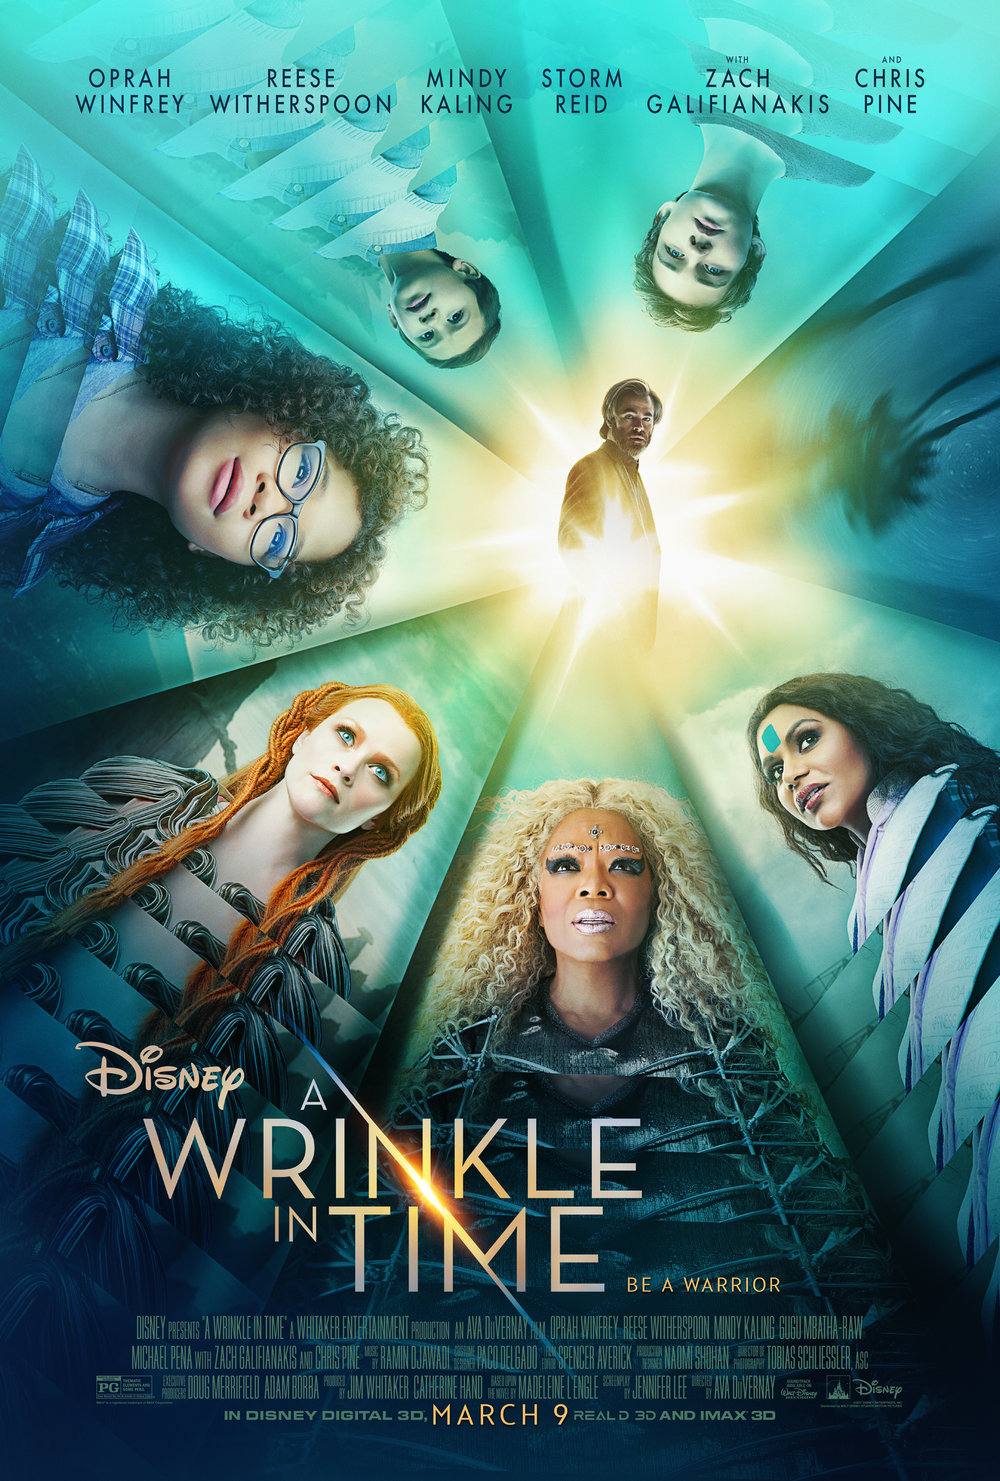 a-wrinkle-in-time-poster.jpg